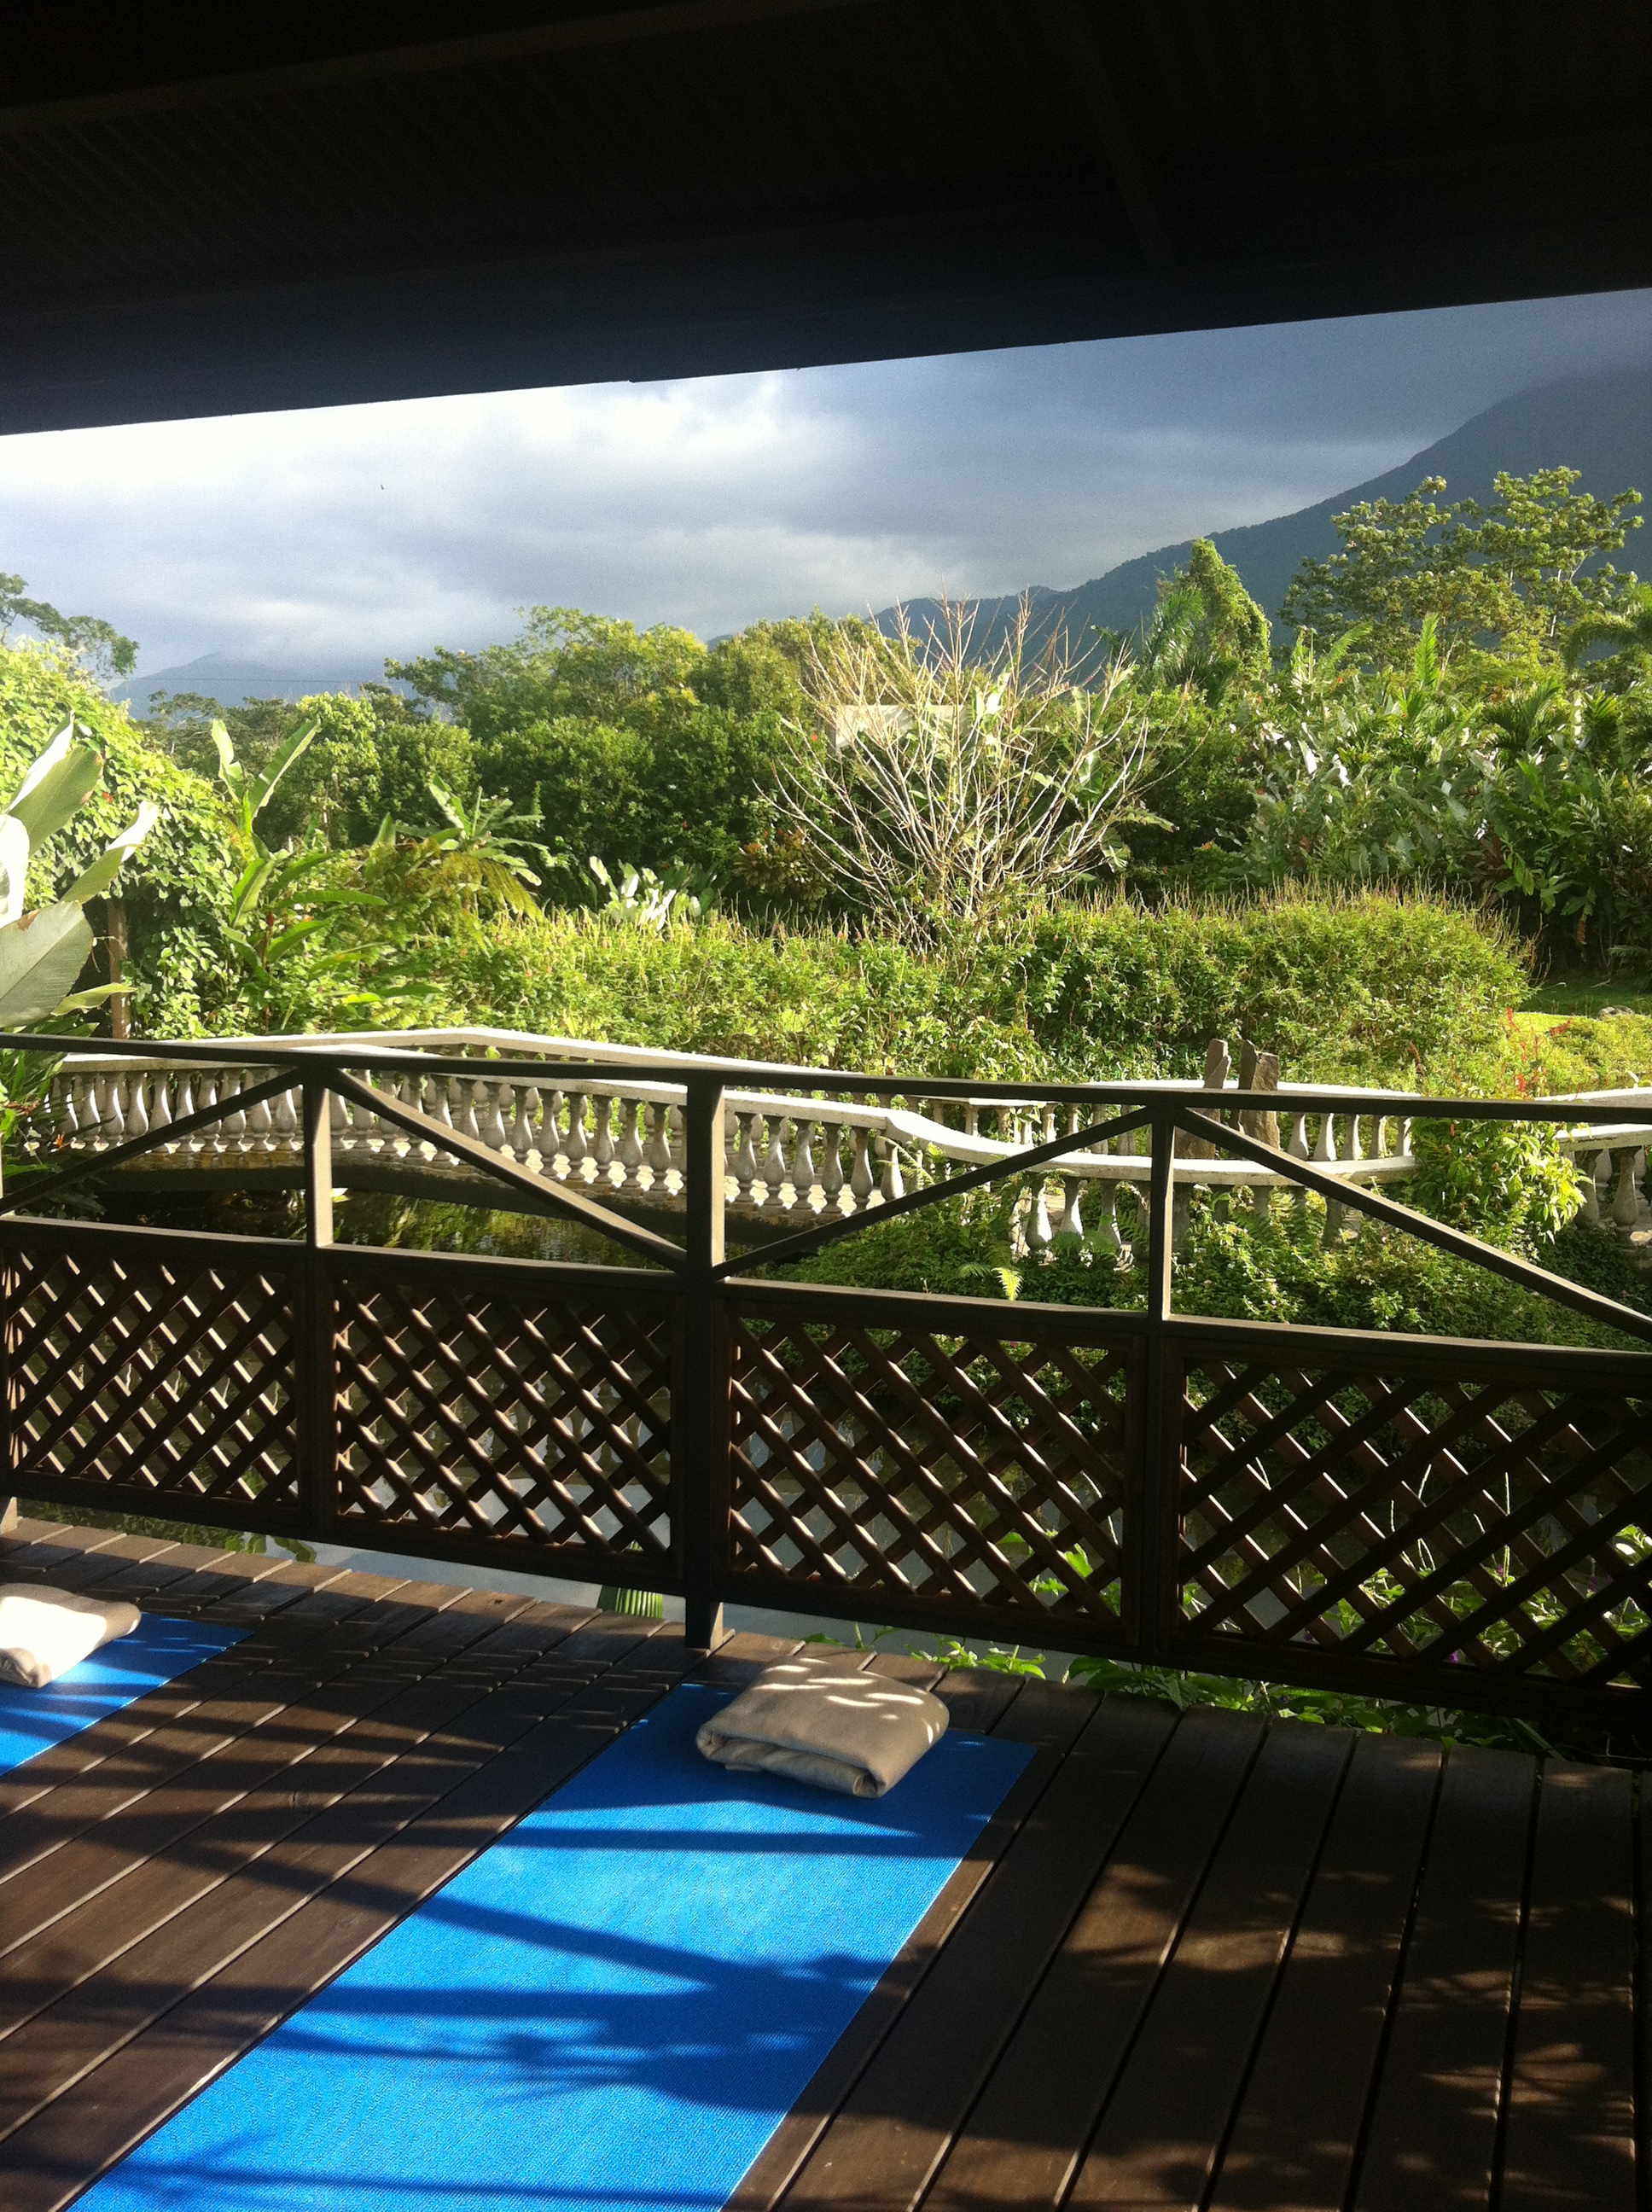 """Thank you for the inspirational photo and words@mrmlfr """"This was taken at a spa with one of the best views of Arenal Volcano in Costa Rica. Meditation and yoga help me keep an open heart, mind and spirit. I was lucky enough to find this spot for some morning stretches surrounded by the most perfectly quiet and still view""""."""